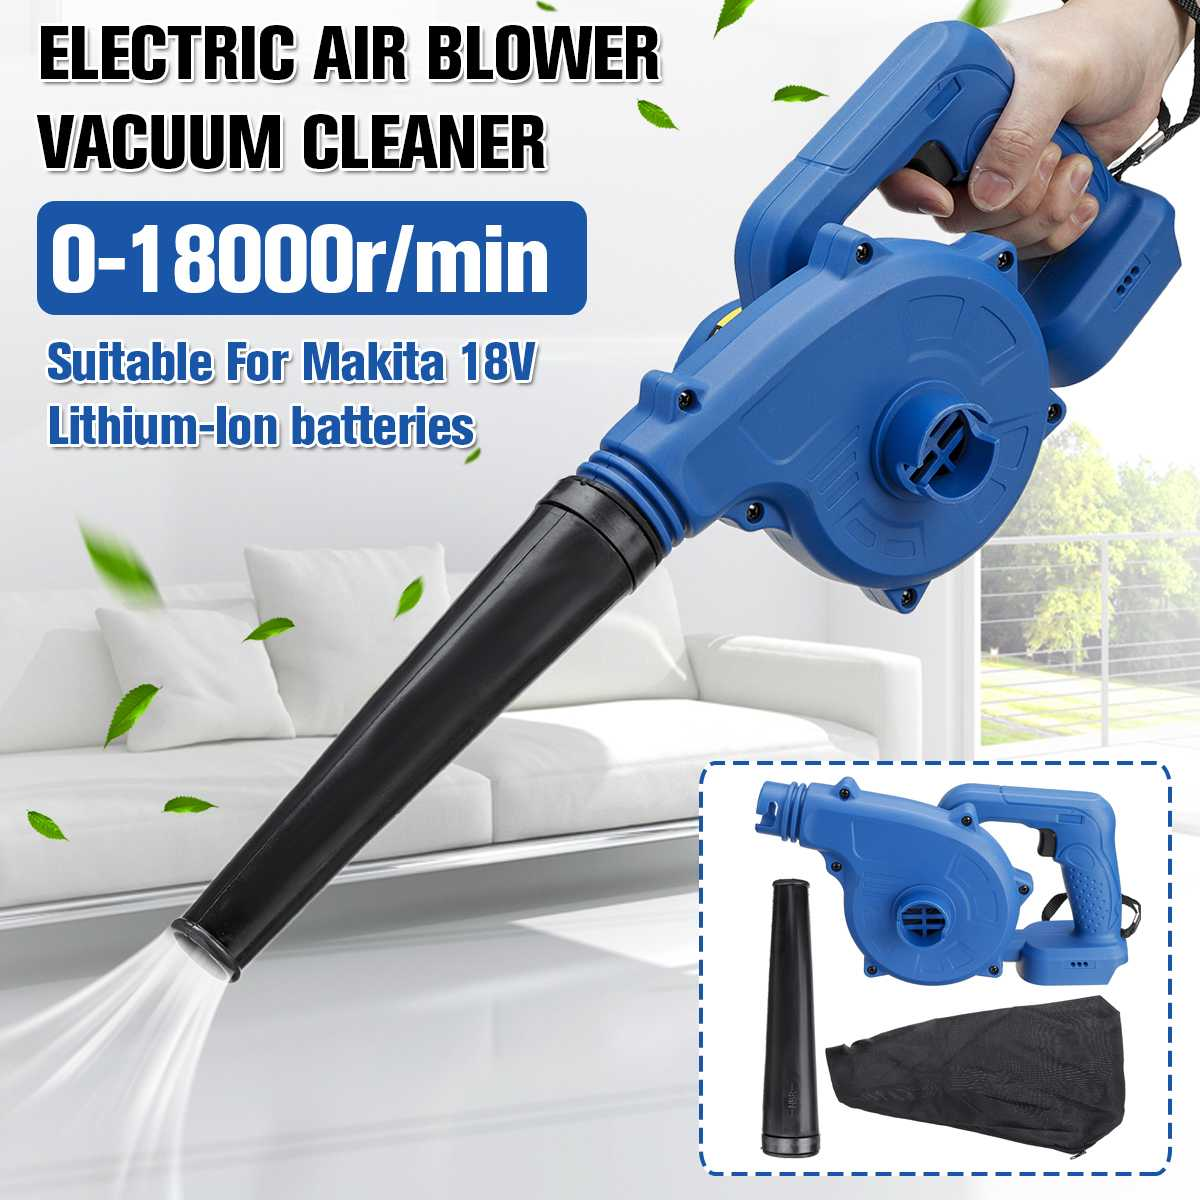 Electric Vacuum Cleaner Cordless Air Blower Household Wireless Vacuum Cleaner Tool For Makita 18V Li-ion Battery For Home Office